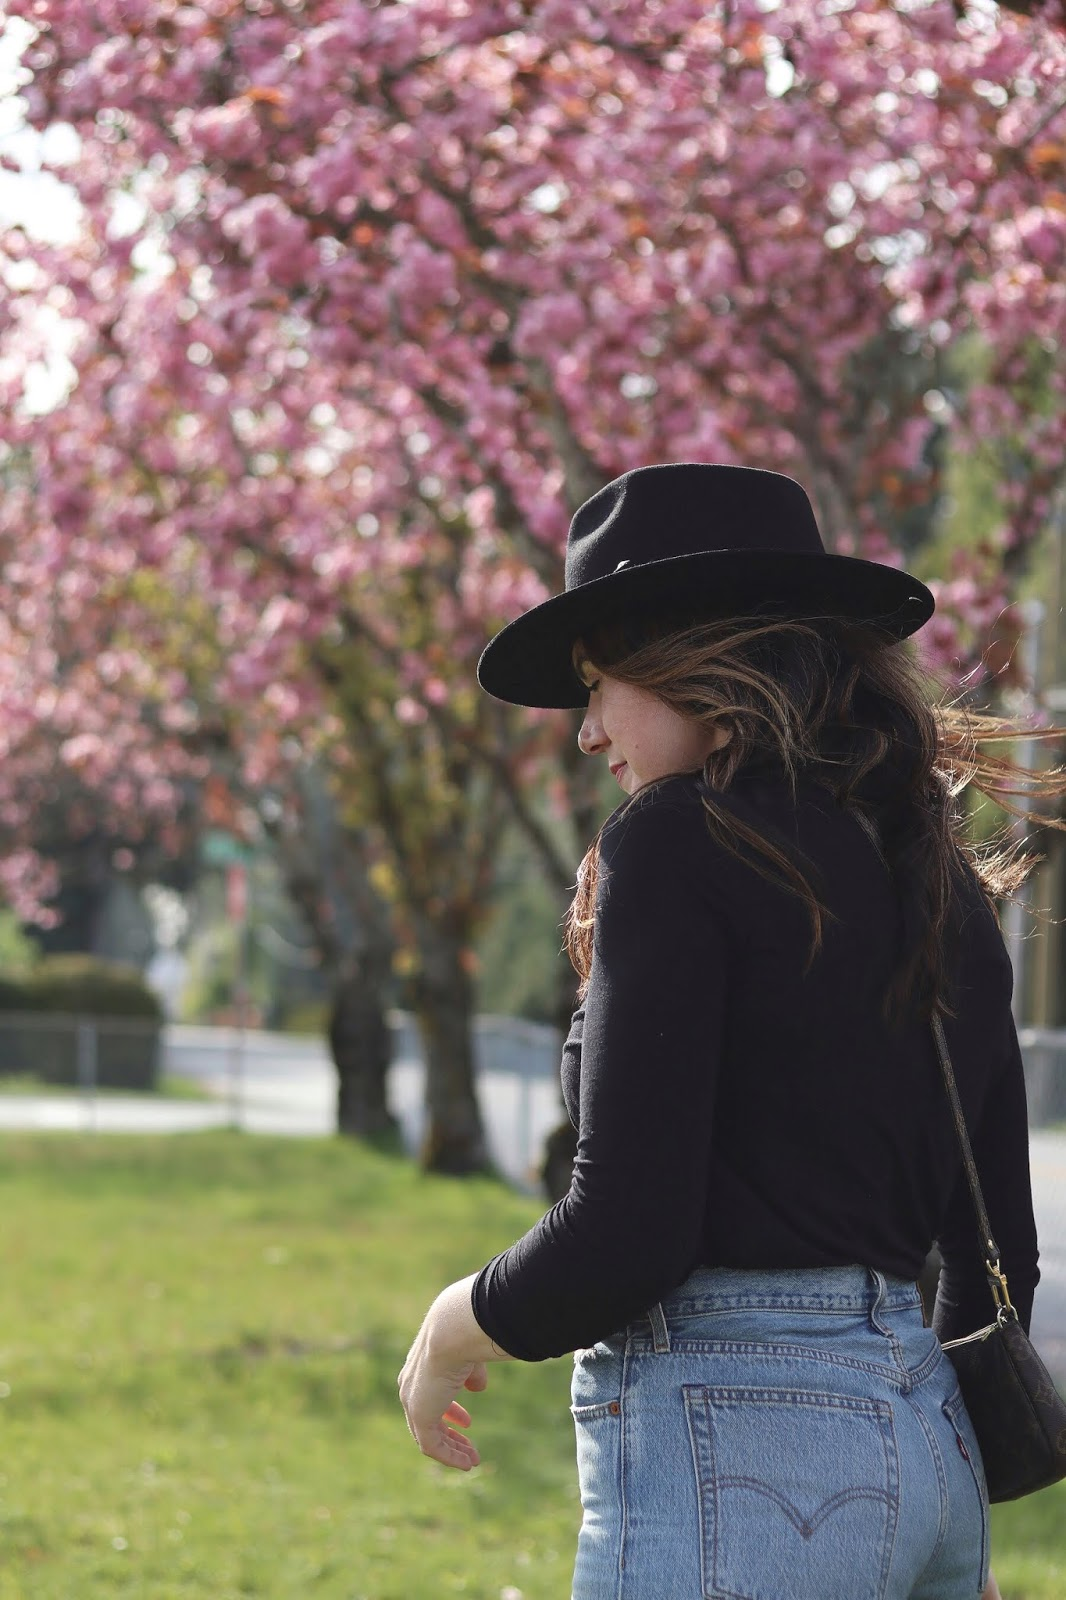 doc martens outfit idea levis wedgie jeans lack of color hat vancouver blogger cherry blossoms